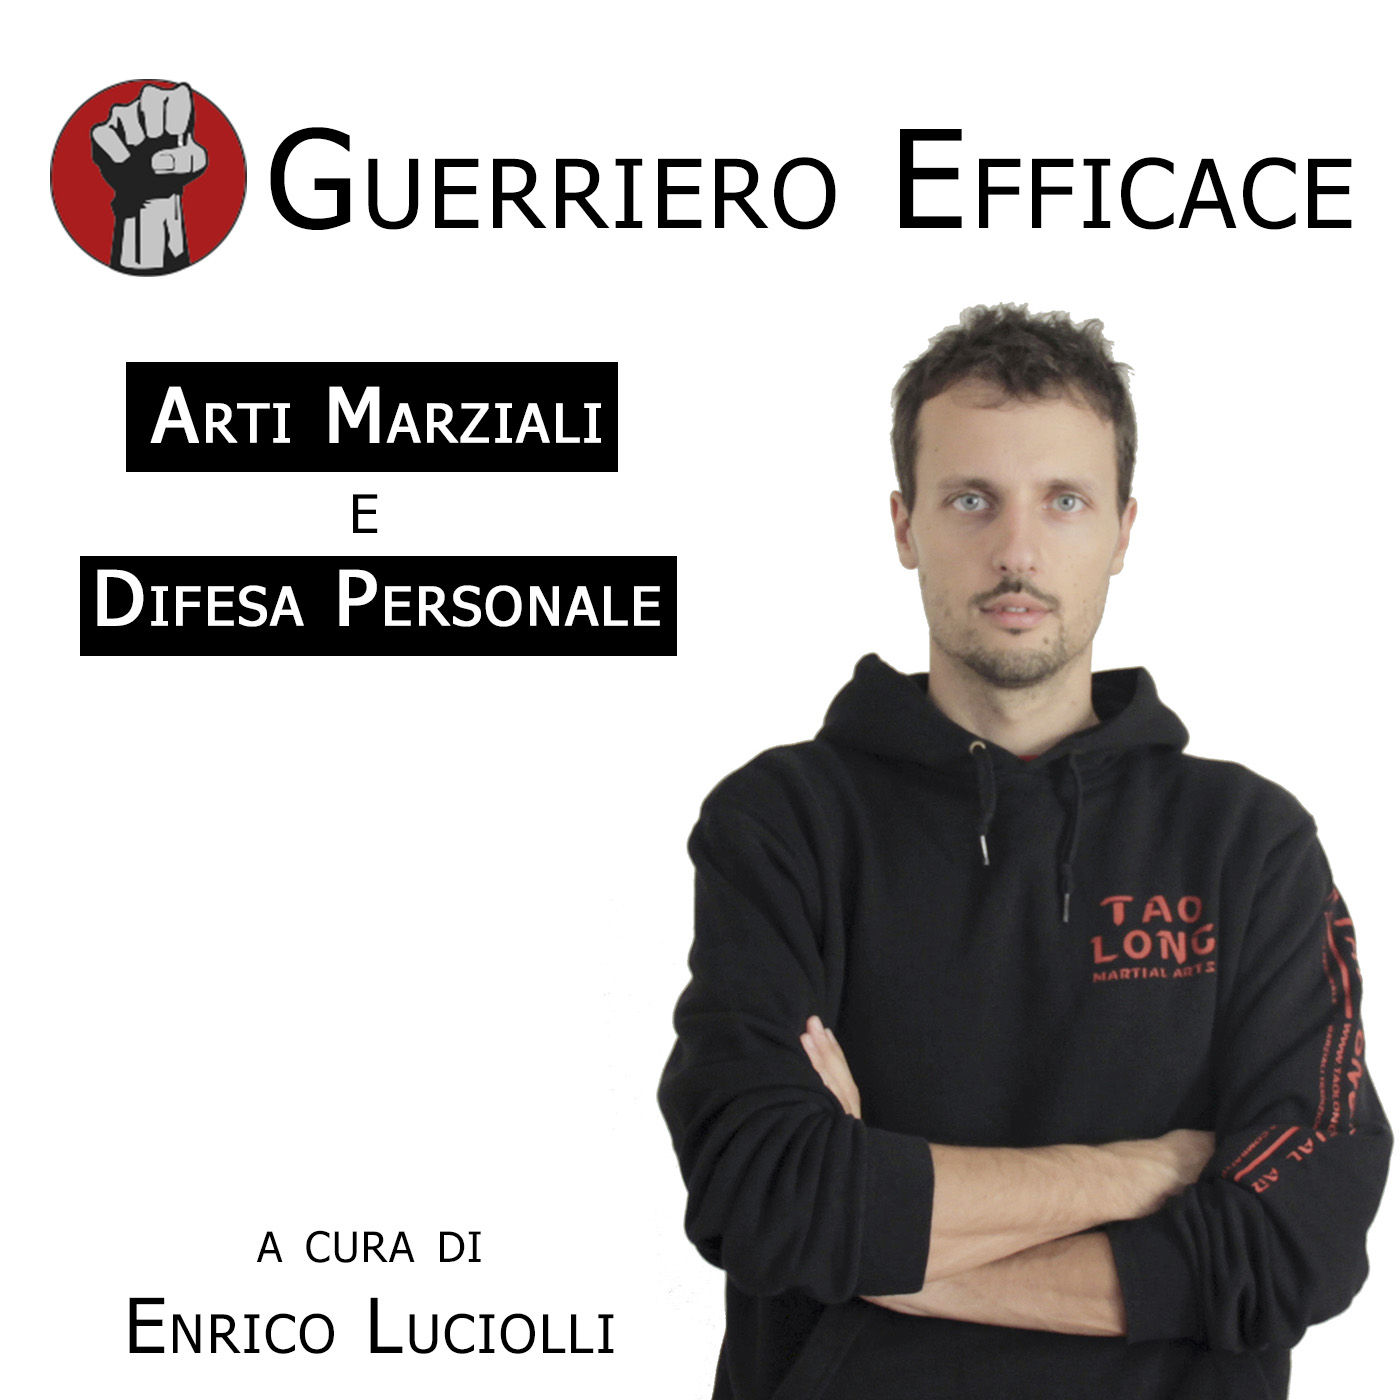 Guerriero Efficace